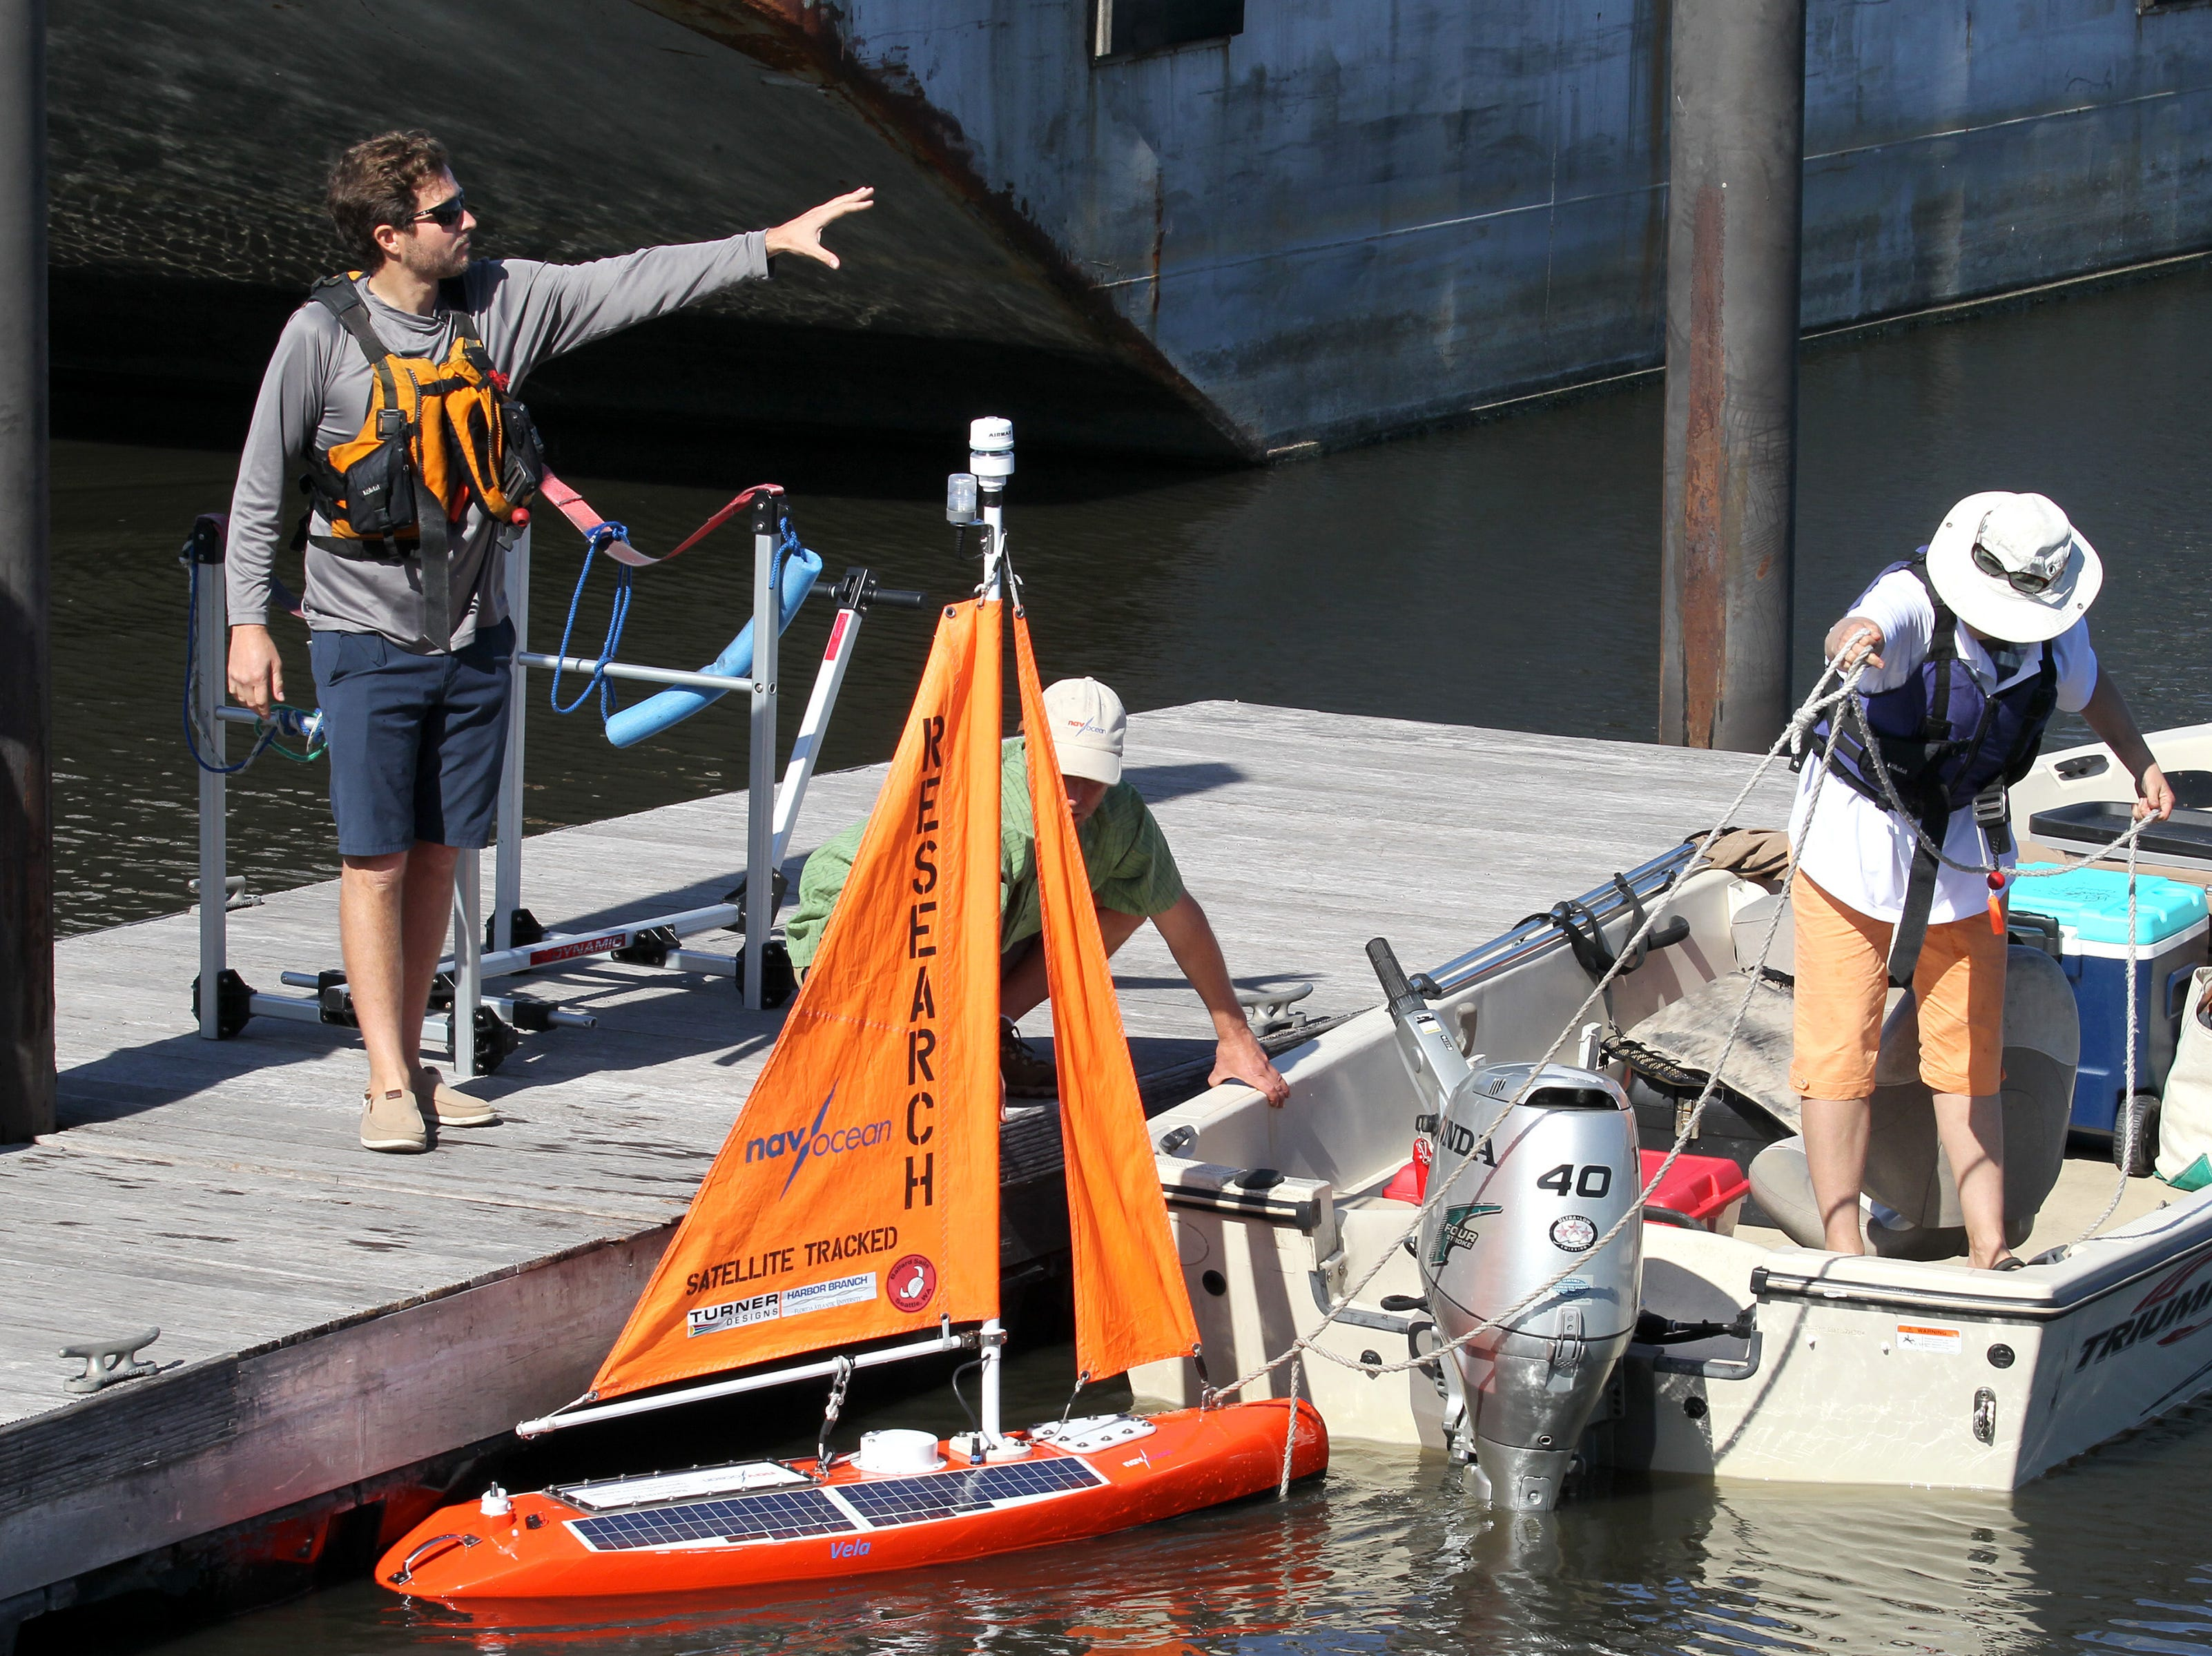 Jordon Beckler, assistant research professor at FAU Harbor Branch Oceanographic Institute (from left), Scott Duncan, president and chief designer at Navocean, and his assistant and field tech Pamela Cragin, prepare to tow Navocean's Nav2, the first autonomous sailboat for algae monitoring, from the dock of the Pahokee Marina into Lake Okeechobee on Tuesday, Feb. 5, 2019 in Pahokee.